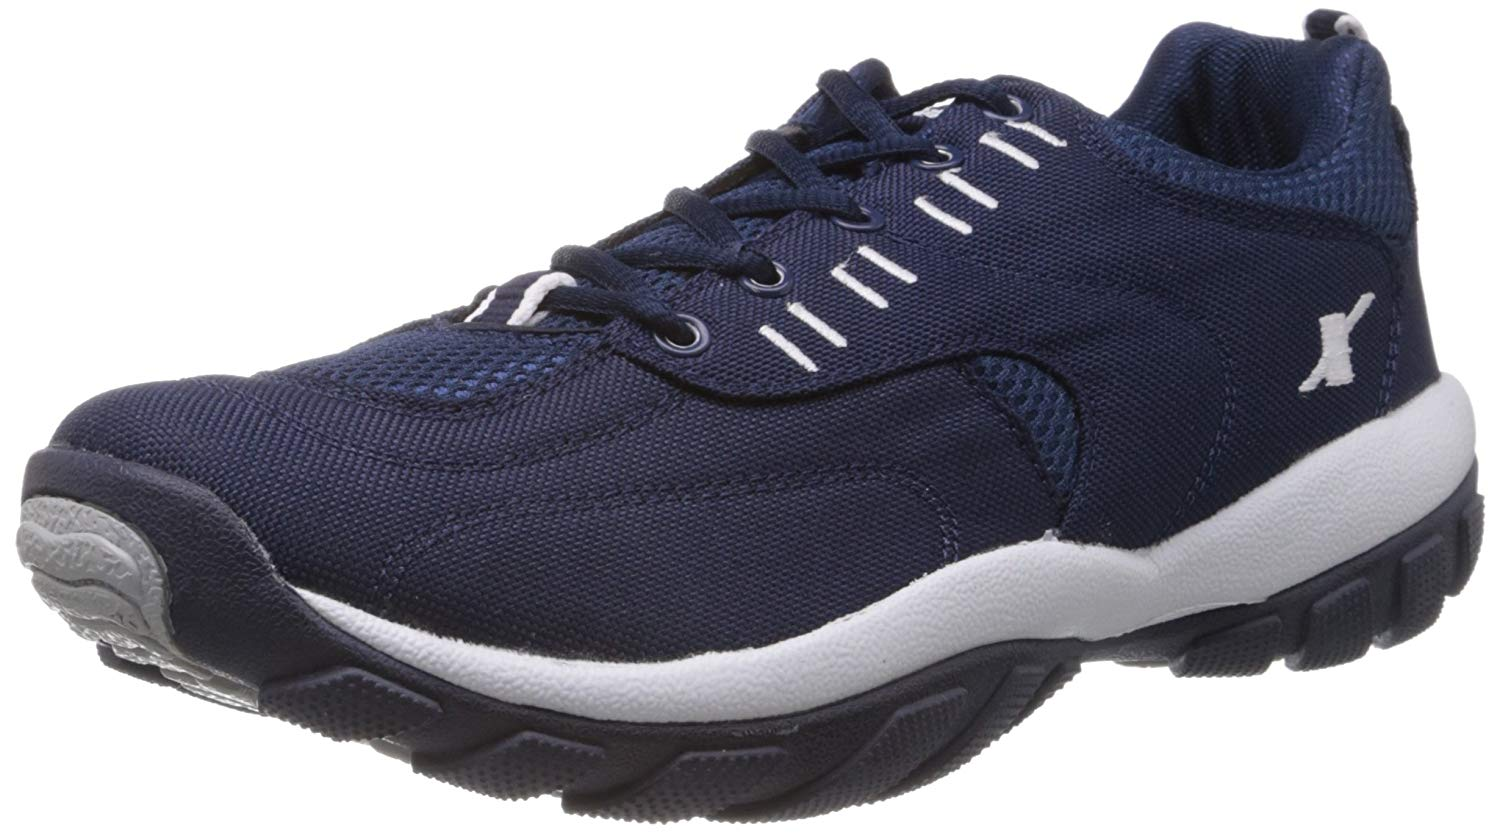 SPARX Navy Blue Running Shoes image 1